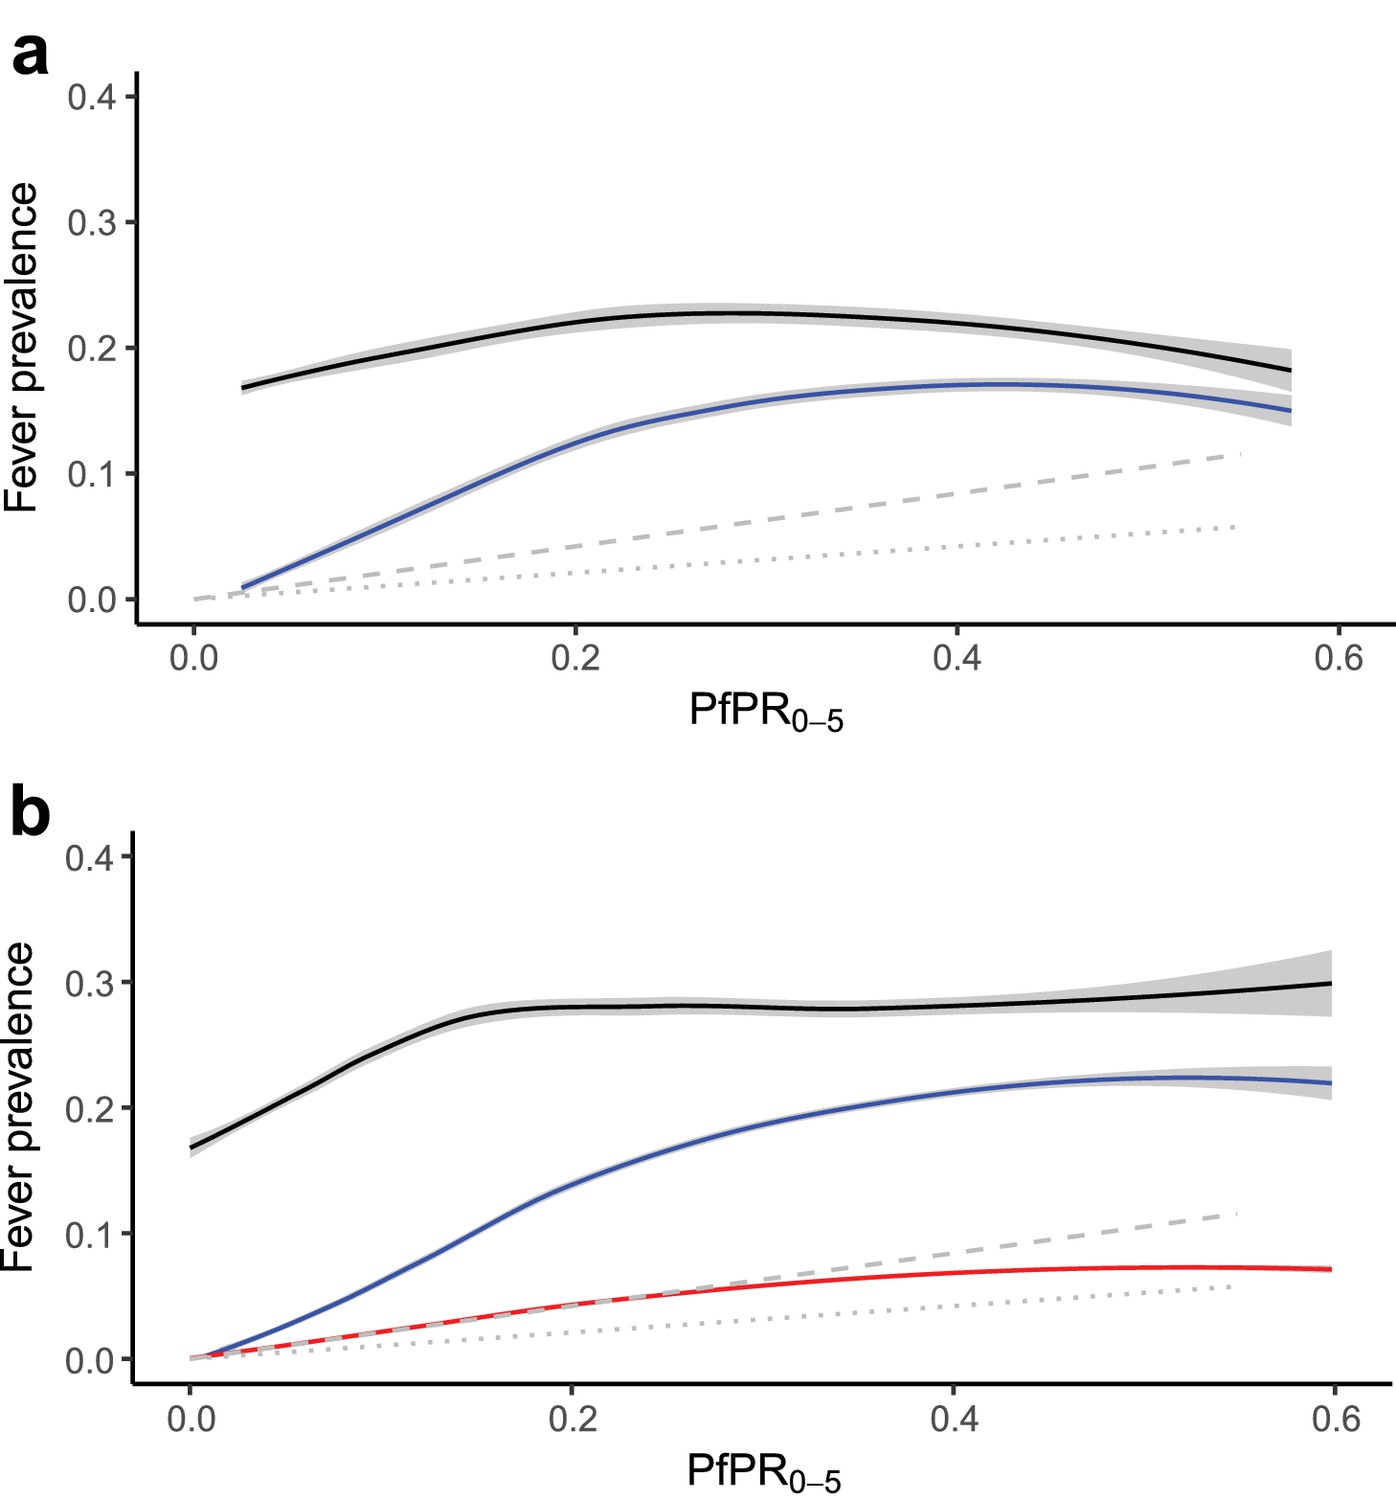 hight resolution of  a response data relationship between all cause fever black line and malaria positive fevers blue line and predicted incidence symptomatic illness